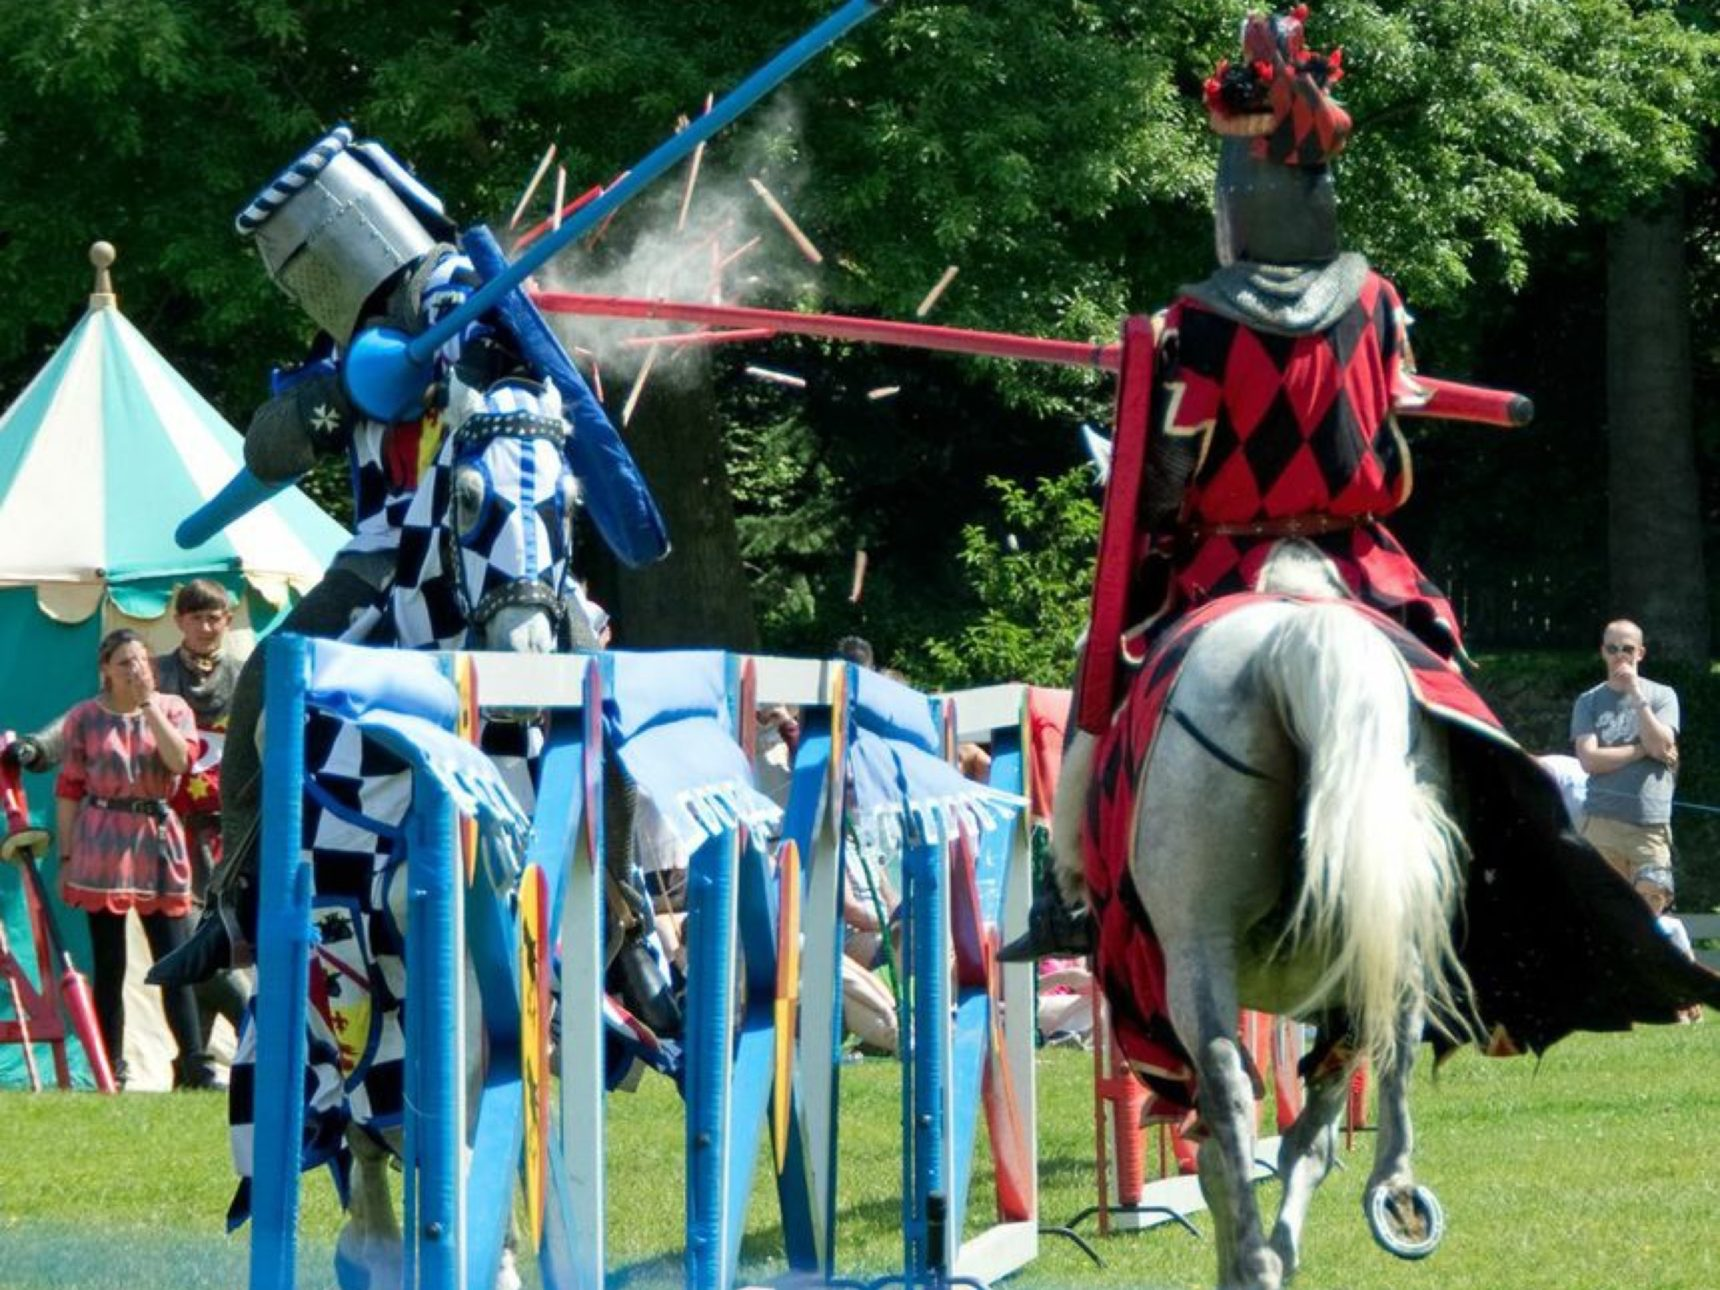 Two knights clash in a jousting competition